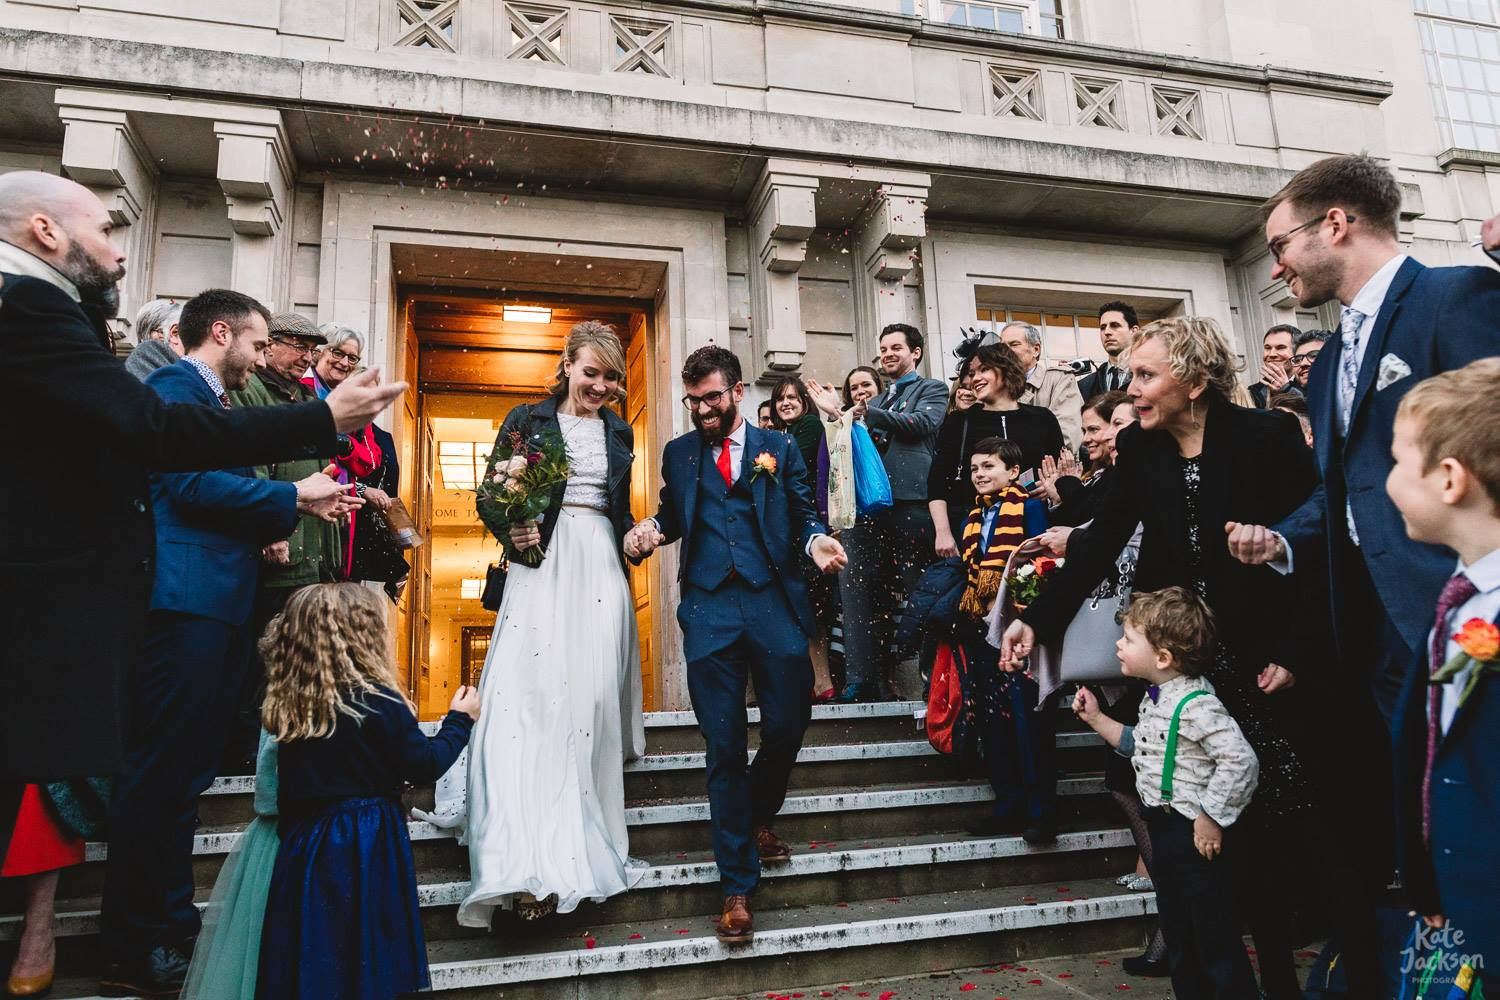 Quirky Venue, Non-traditional wedding event planner, London Wedding coordination, Bespoke weddings, East London Wedding, Pub Wedding, informal, Sparklers, Venue finding, Kate Jackson Photography